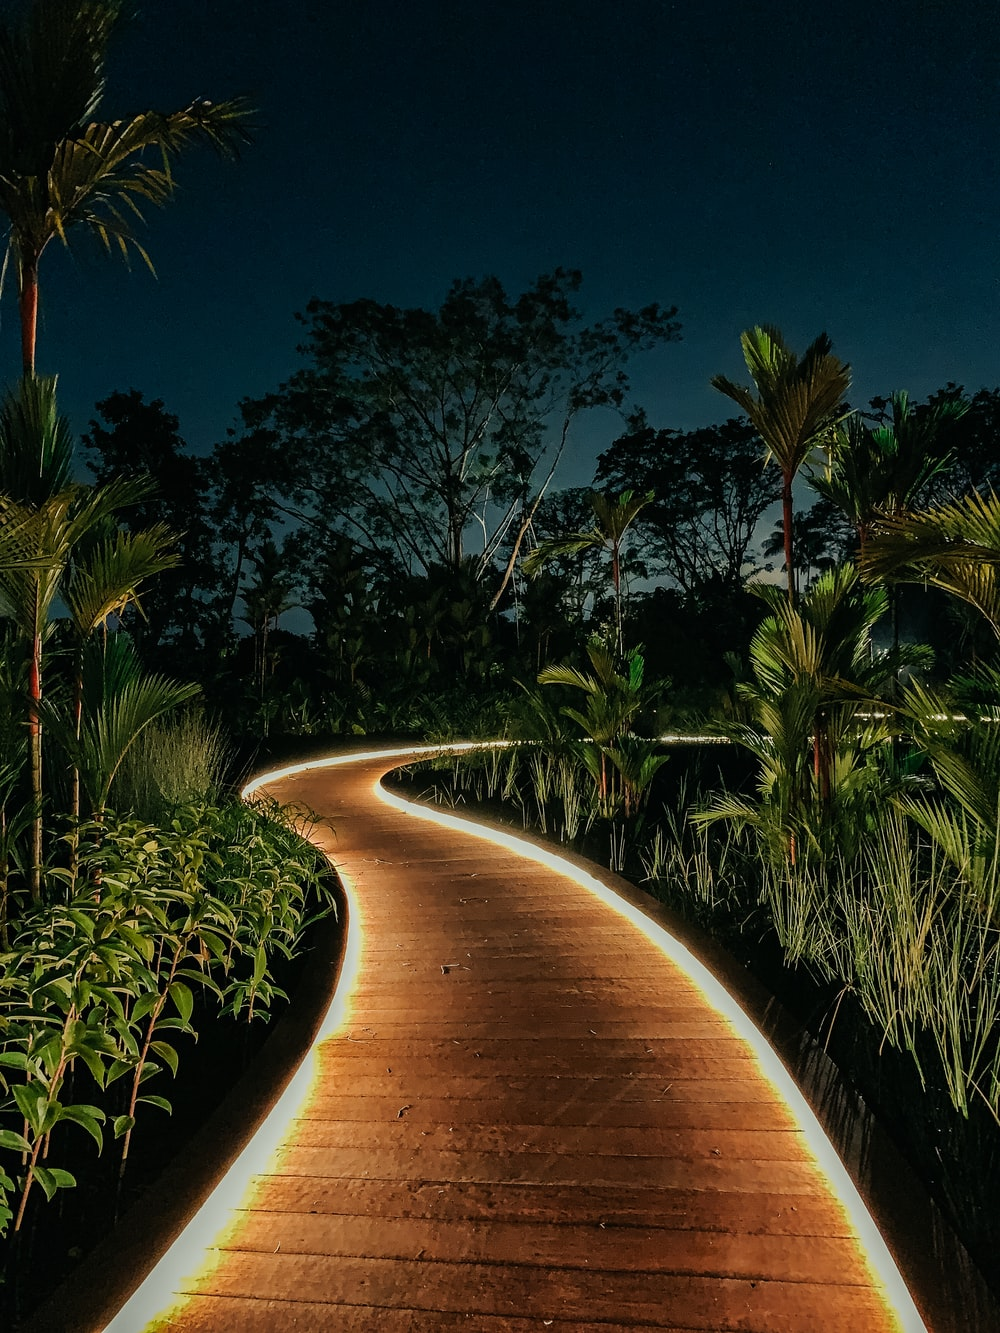 green palm trees near brown pathway